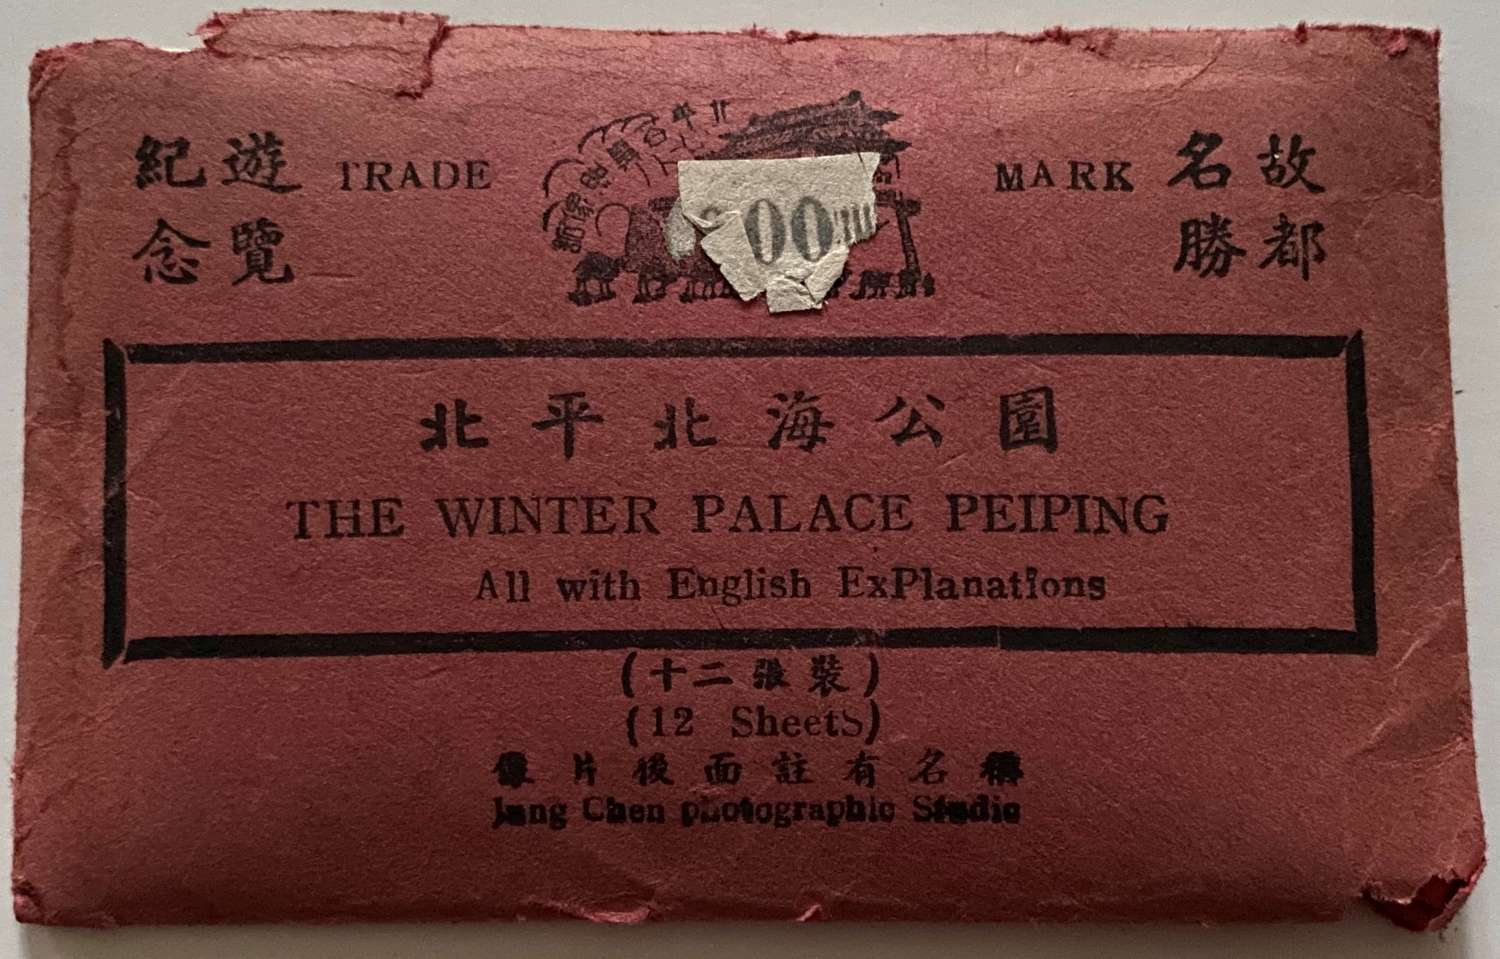 Set of 12 Photos in Original Pack The Winter Palace Peiping. Peking